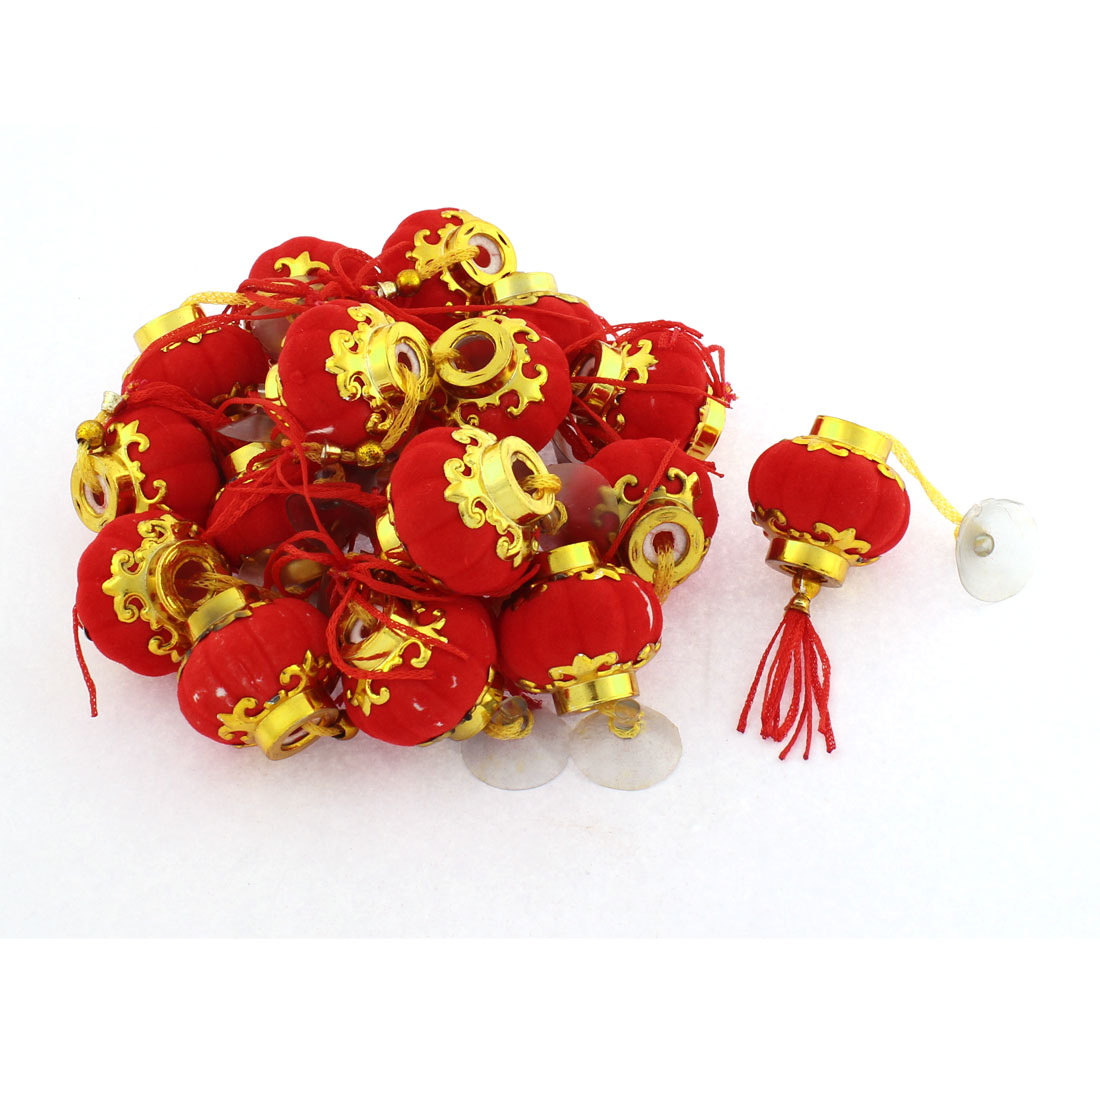 Lantern Design Hanging Ring Bell Ornament Keyring Decor Red Gold Tone 18pcs